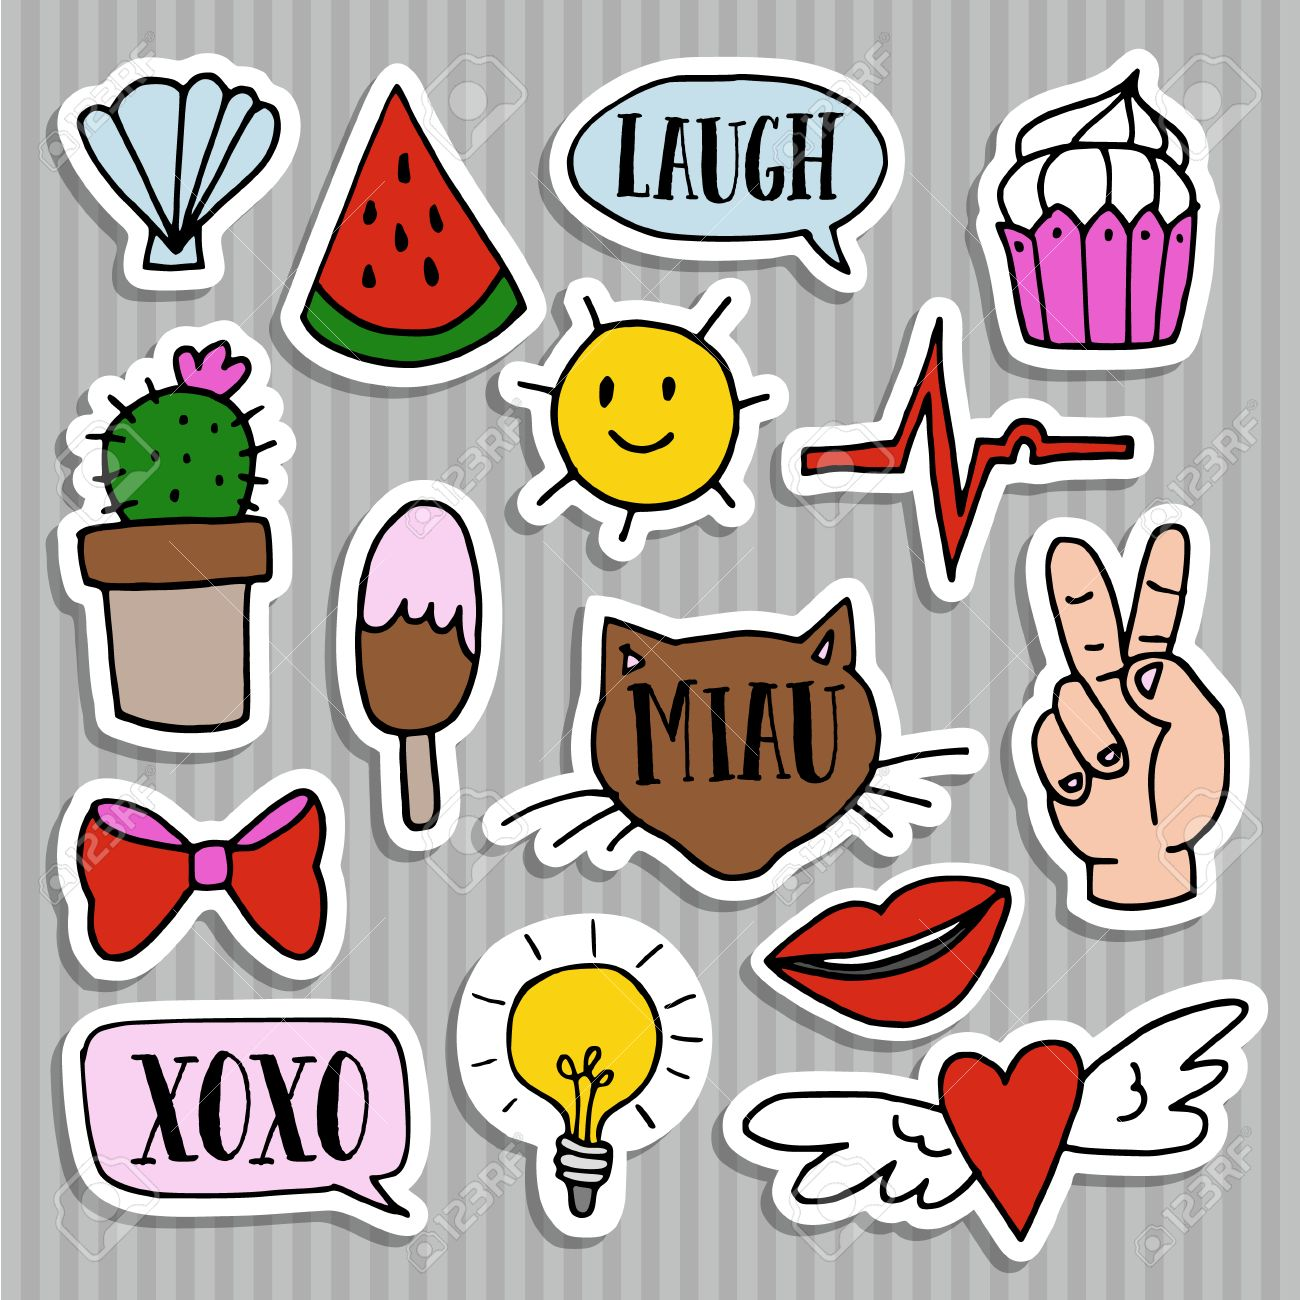 Set of fashion patches, badges, pins and stickers. Cool trendy hand drawn design. Isolatedvector objects - 63000407